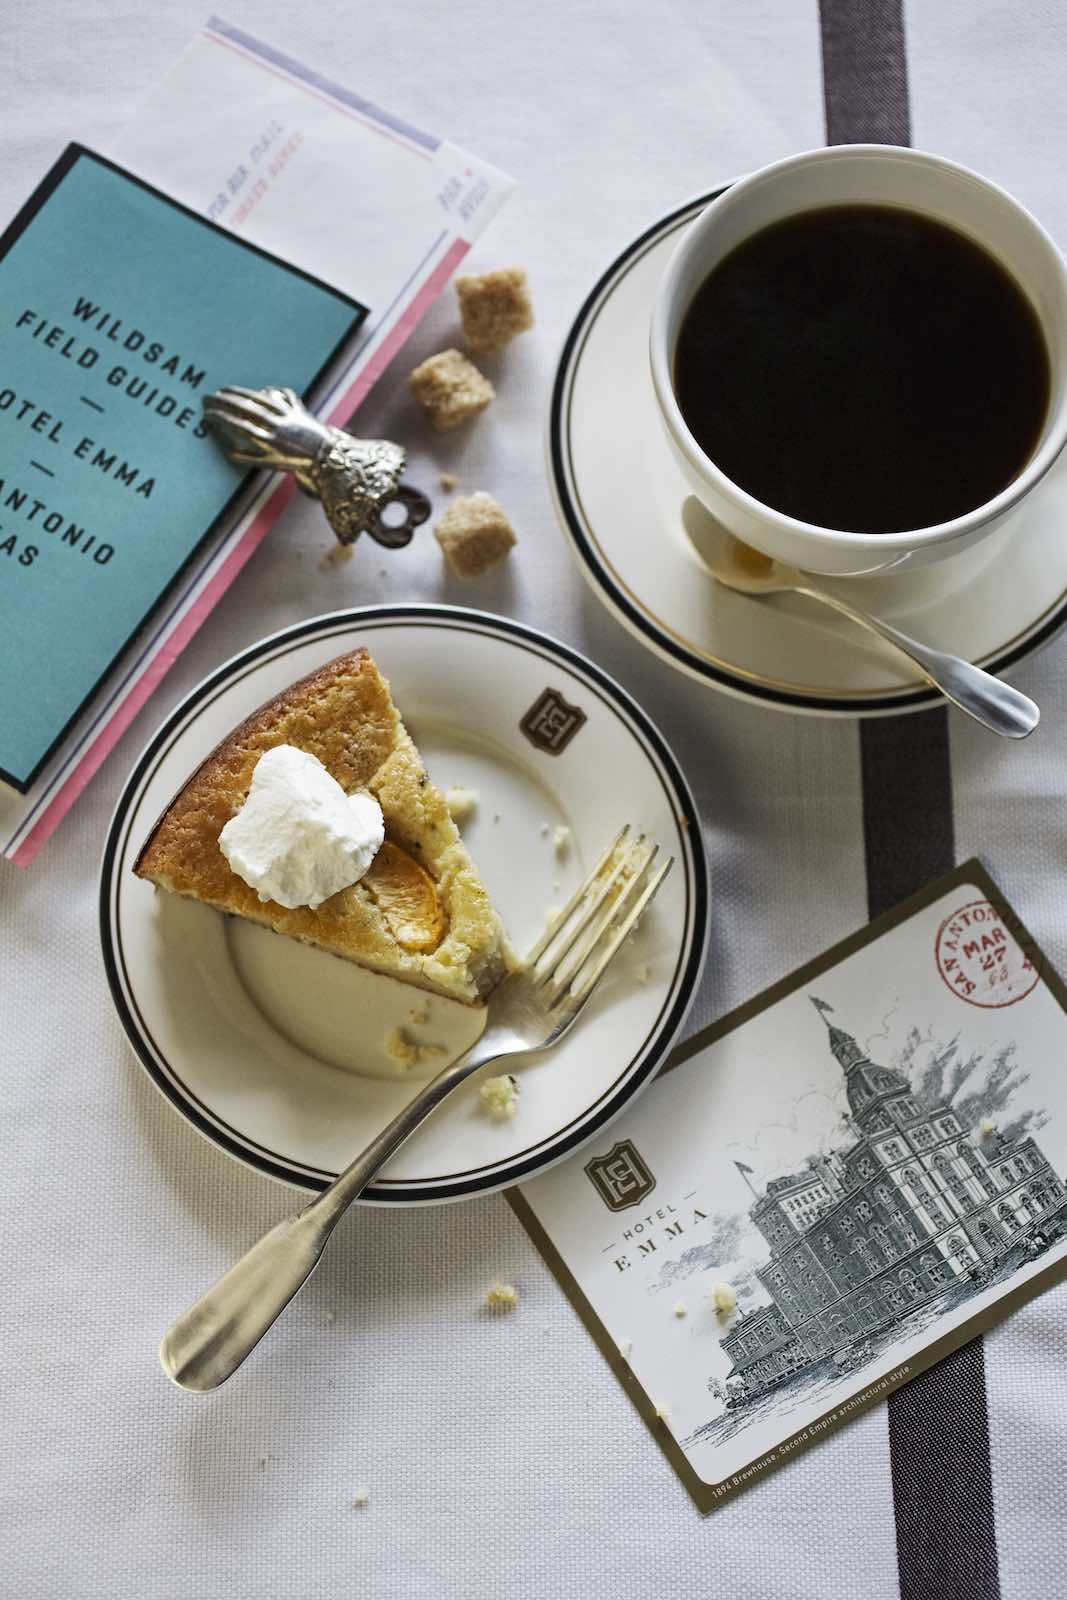 Jody Horton Photography - Dessert and coffee with a Hotel Emma postcard.